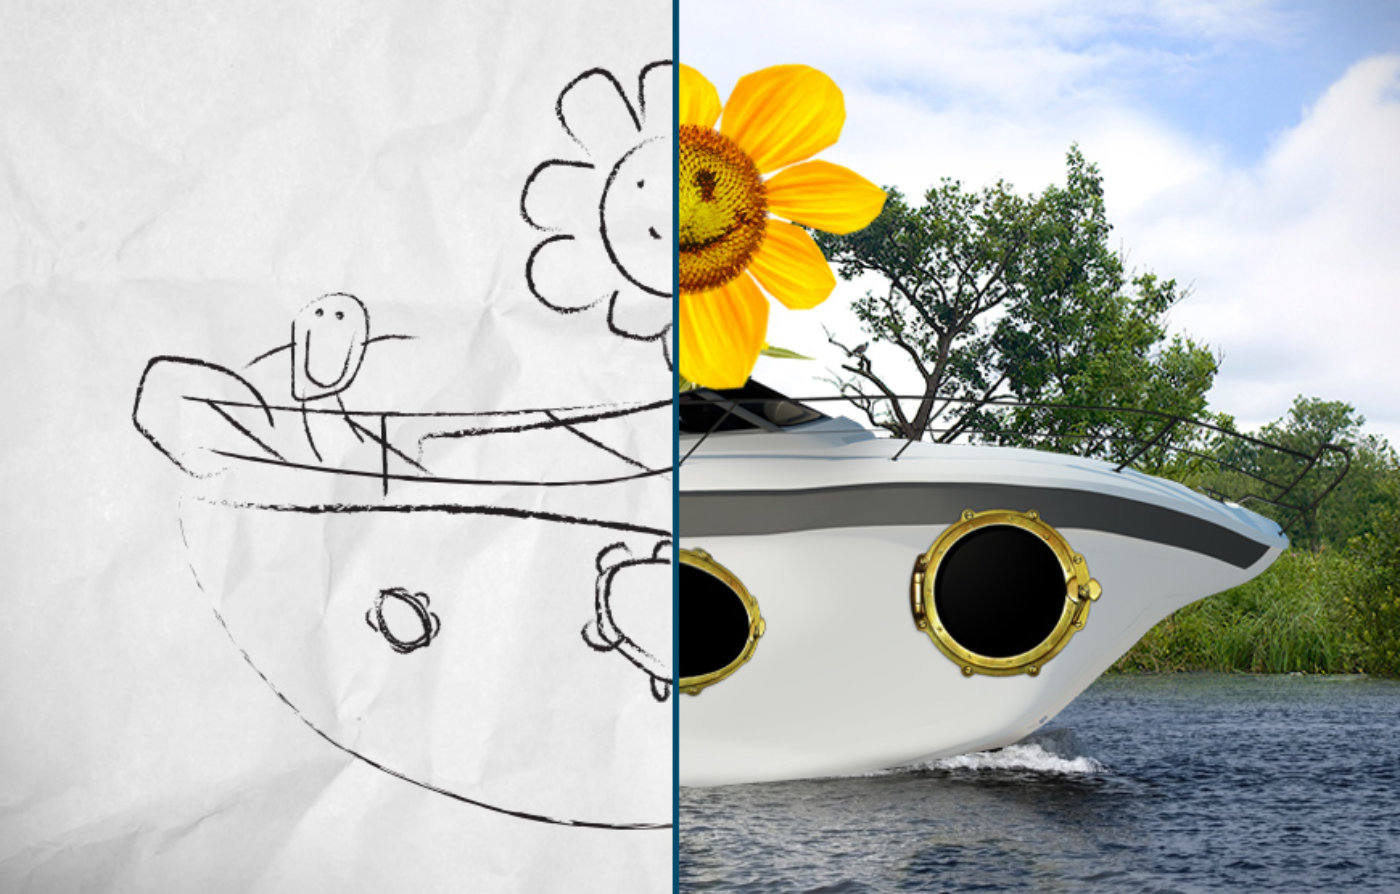 Create a boat competition Norfolk Broads Direct